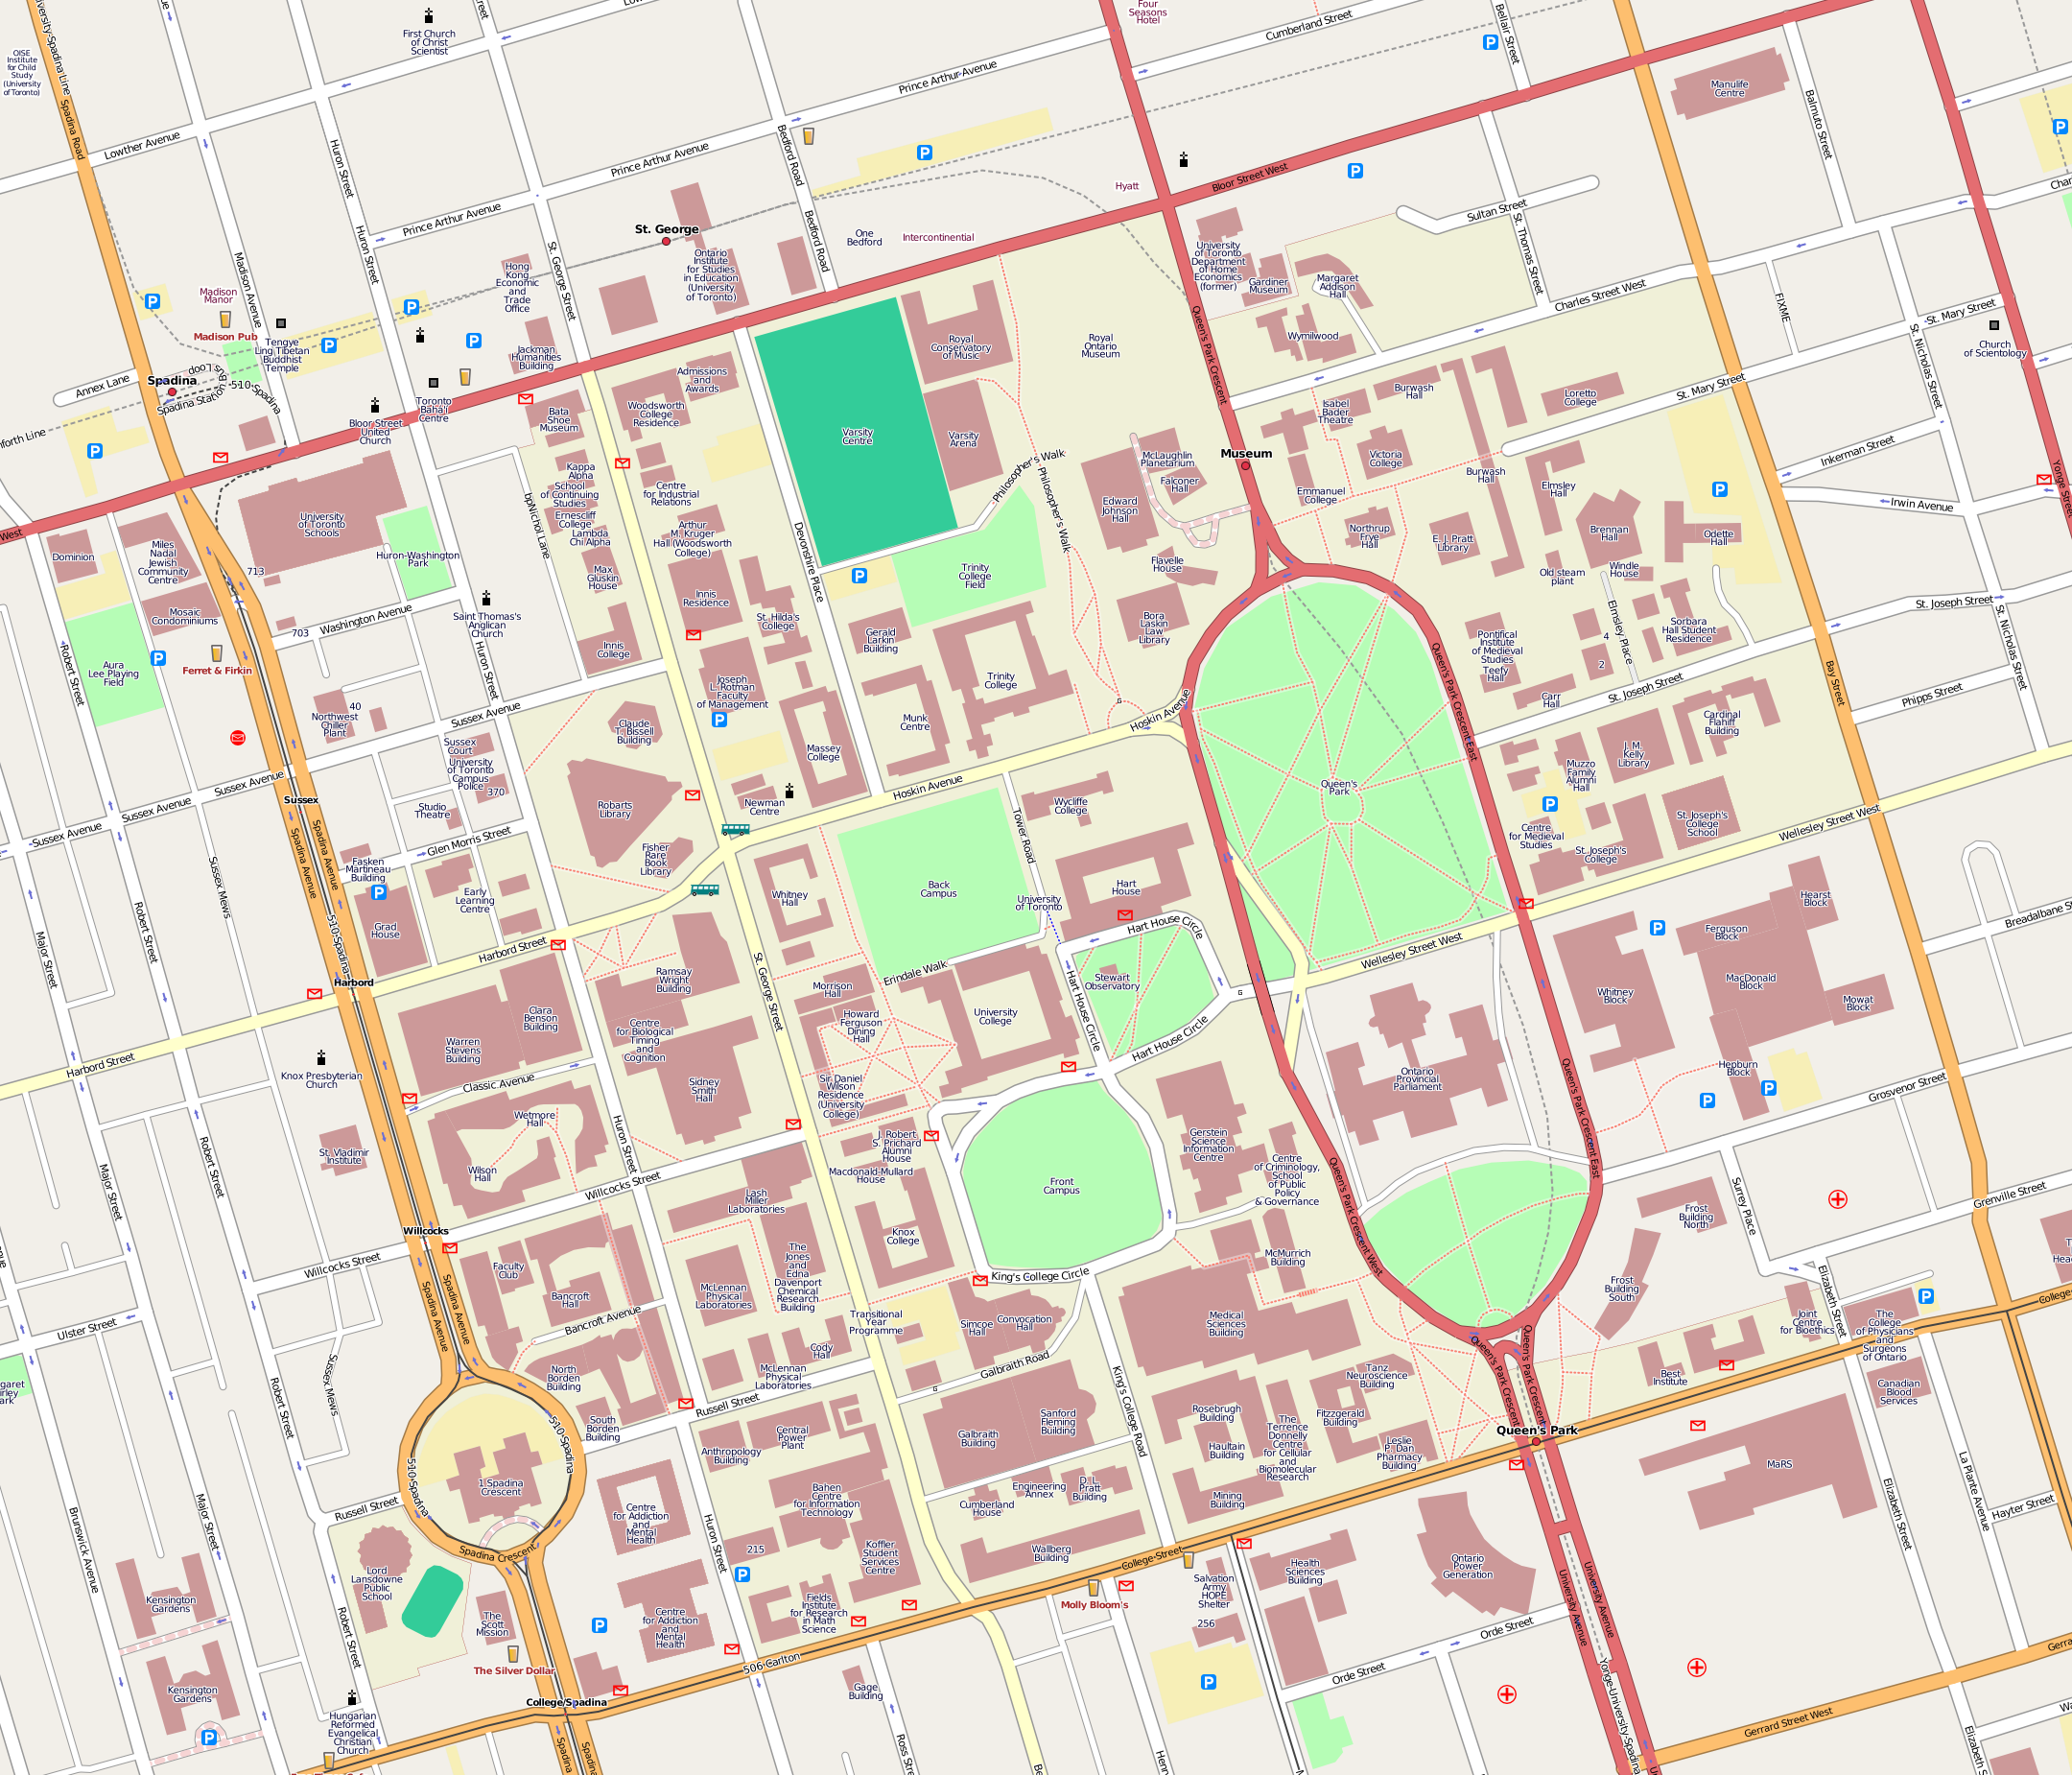 Map U Of T File:U of T map.png   Wikimedia Commons